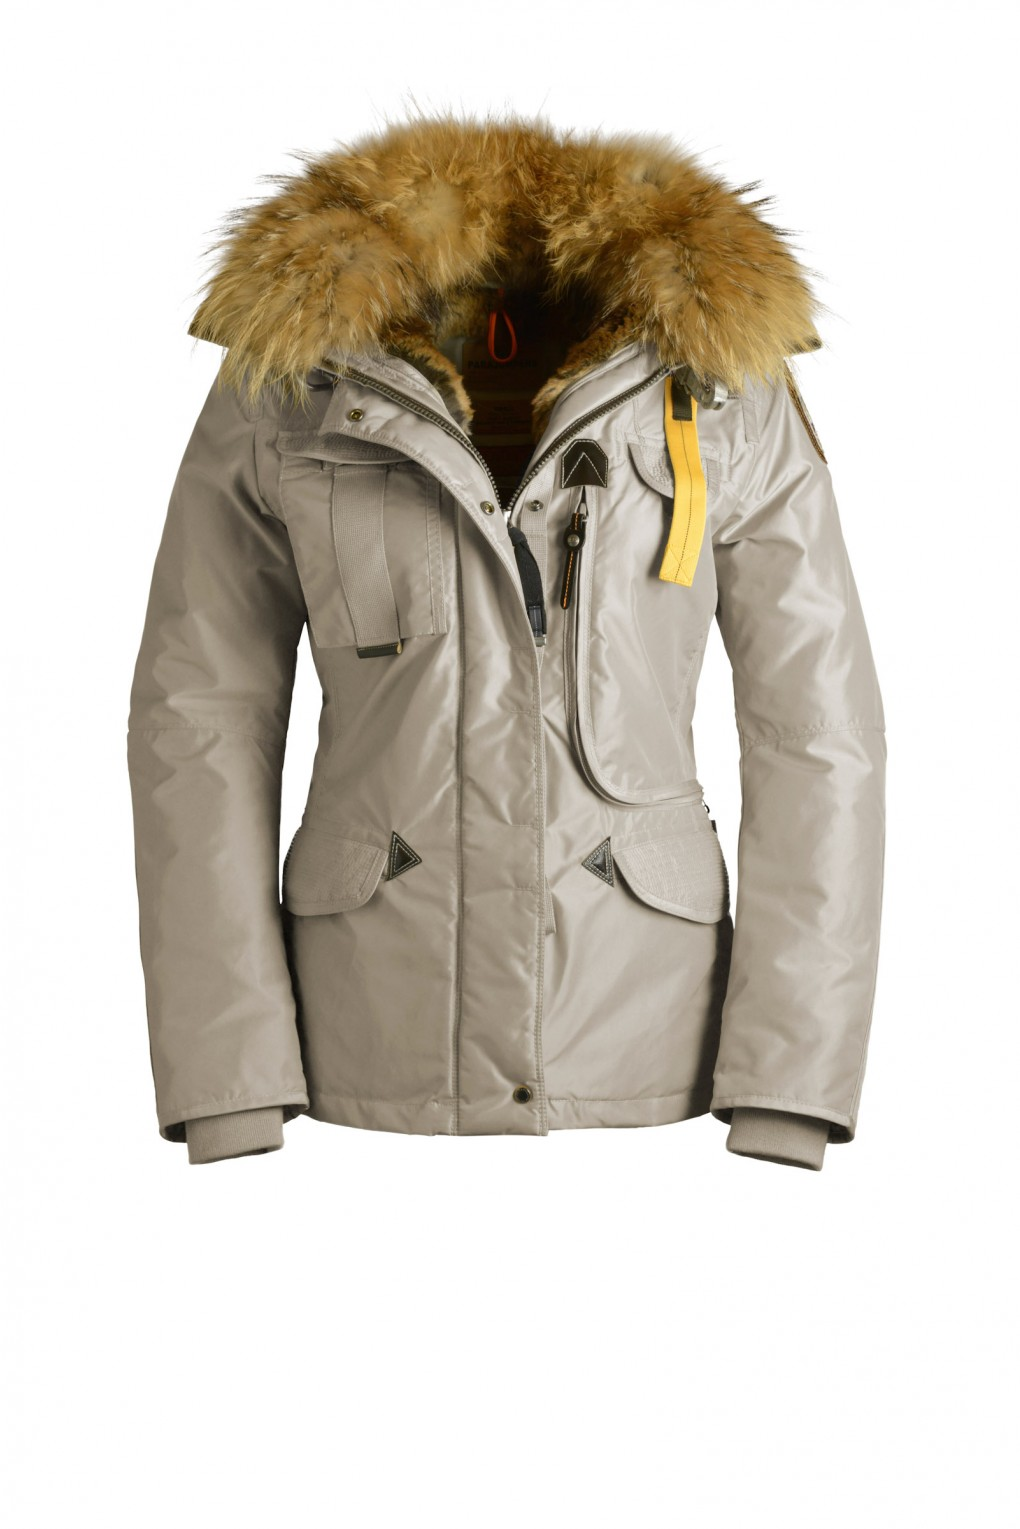 parajumpers DENALI woman outerwear Cappuccino